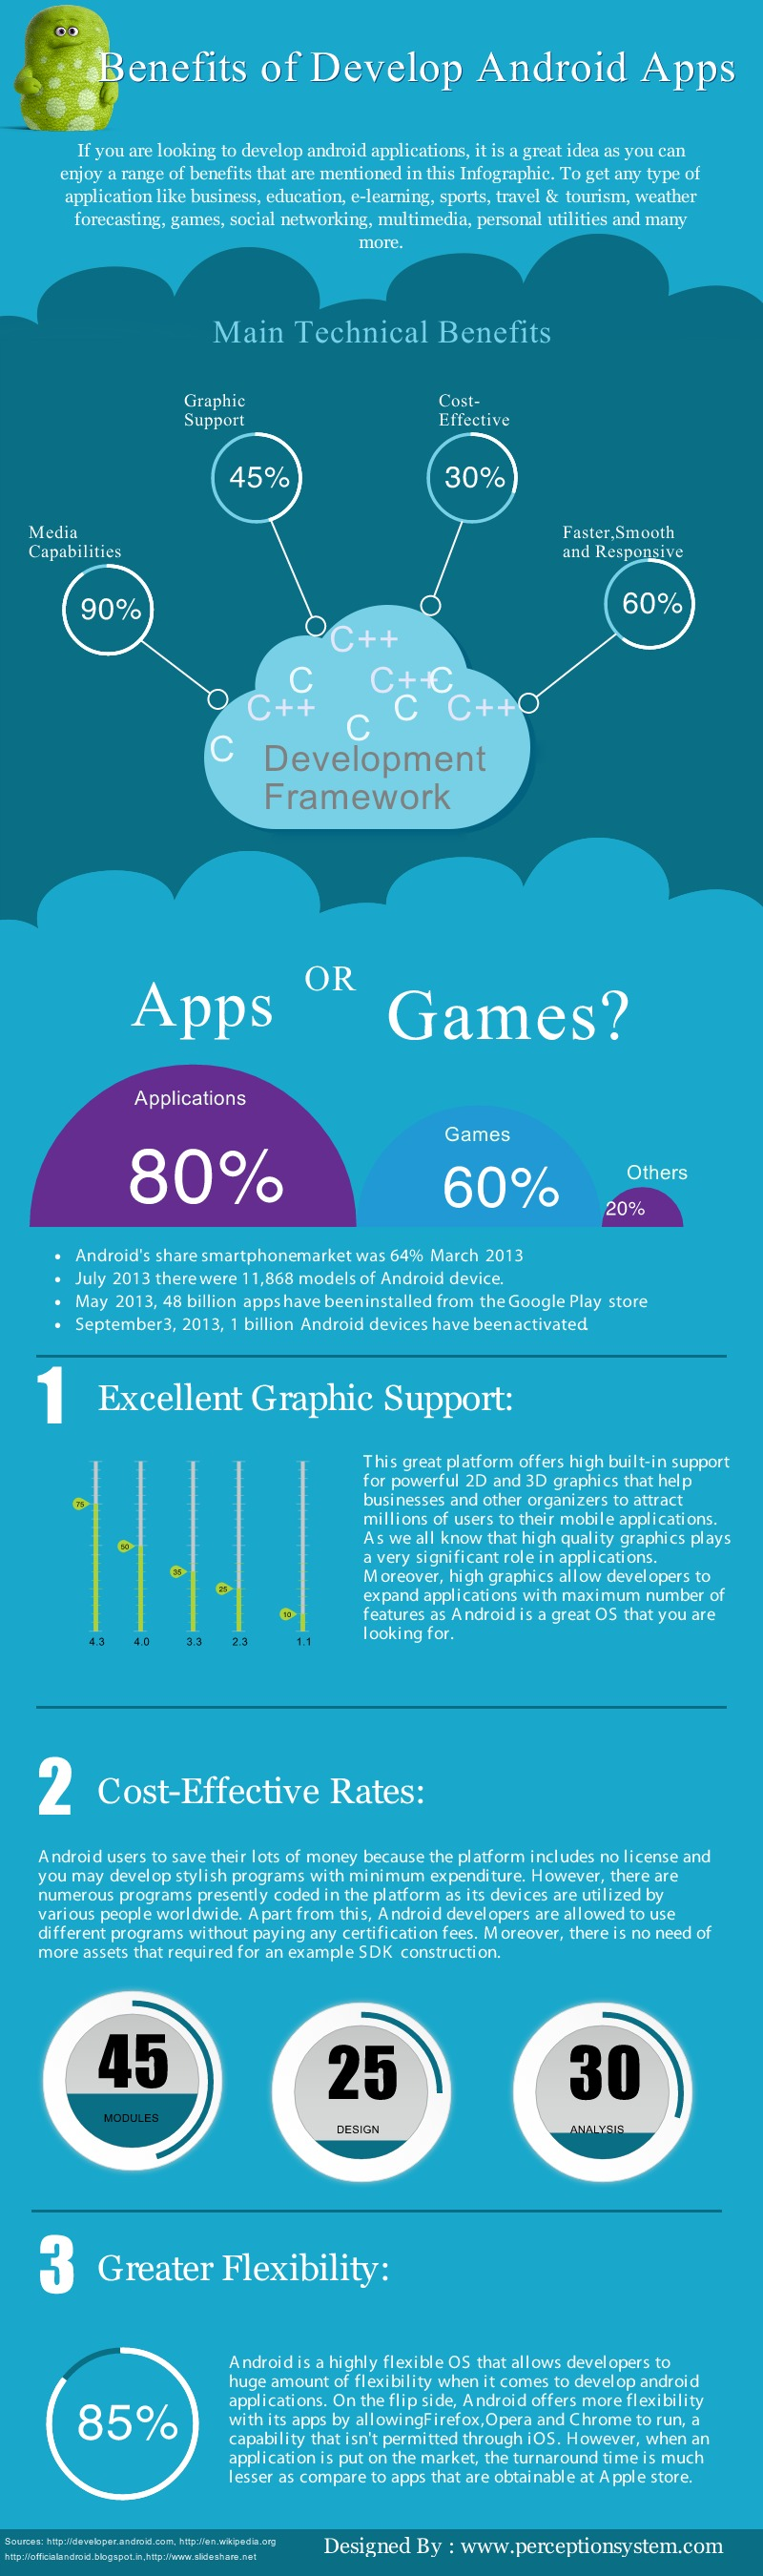 Benefits of Develop Android Apps